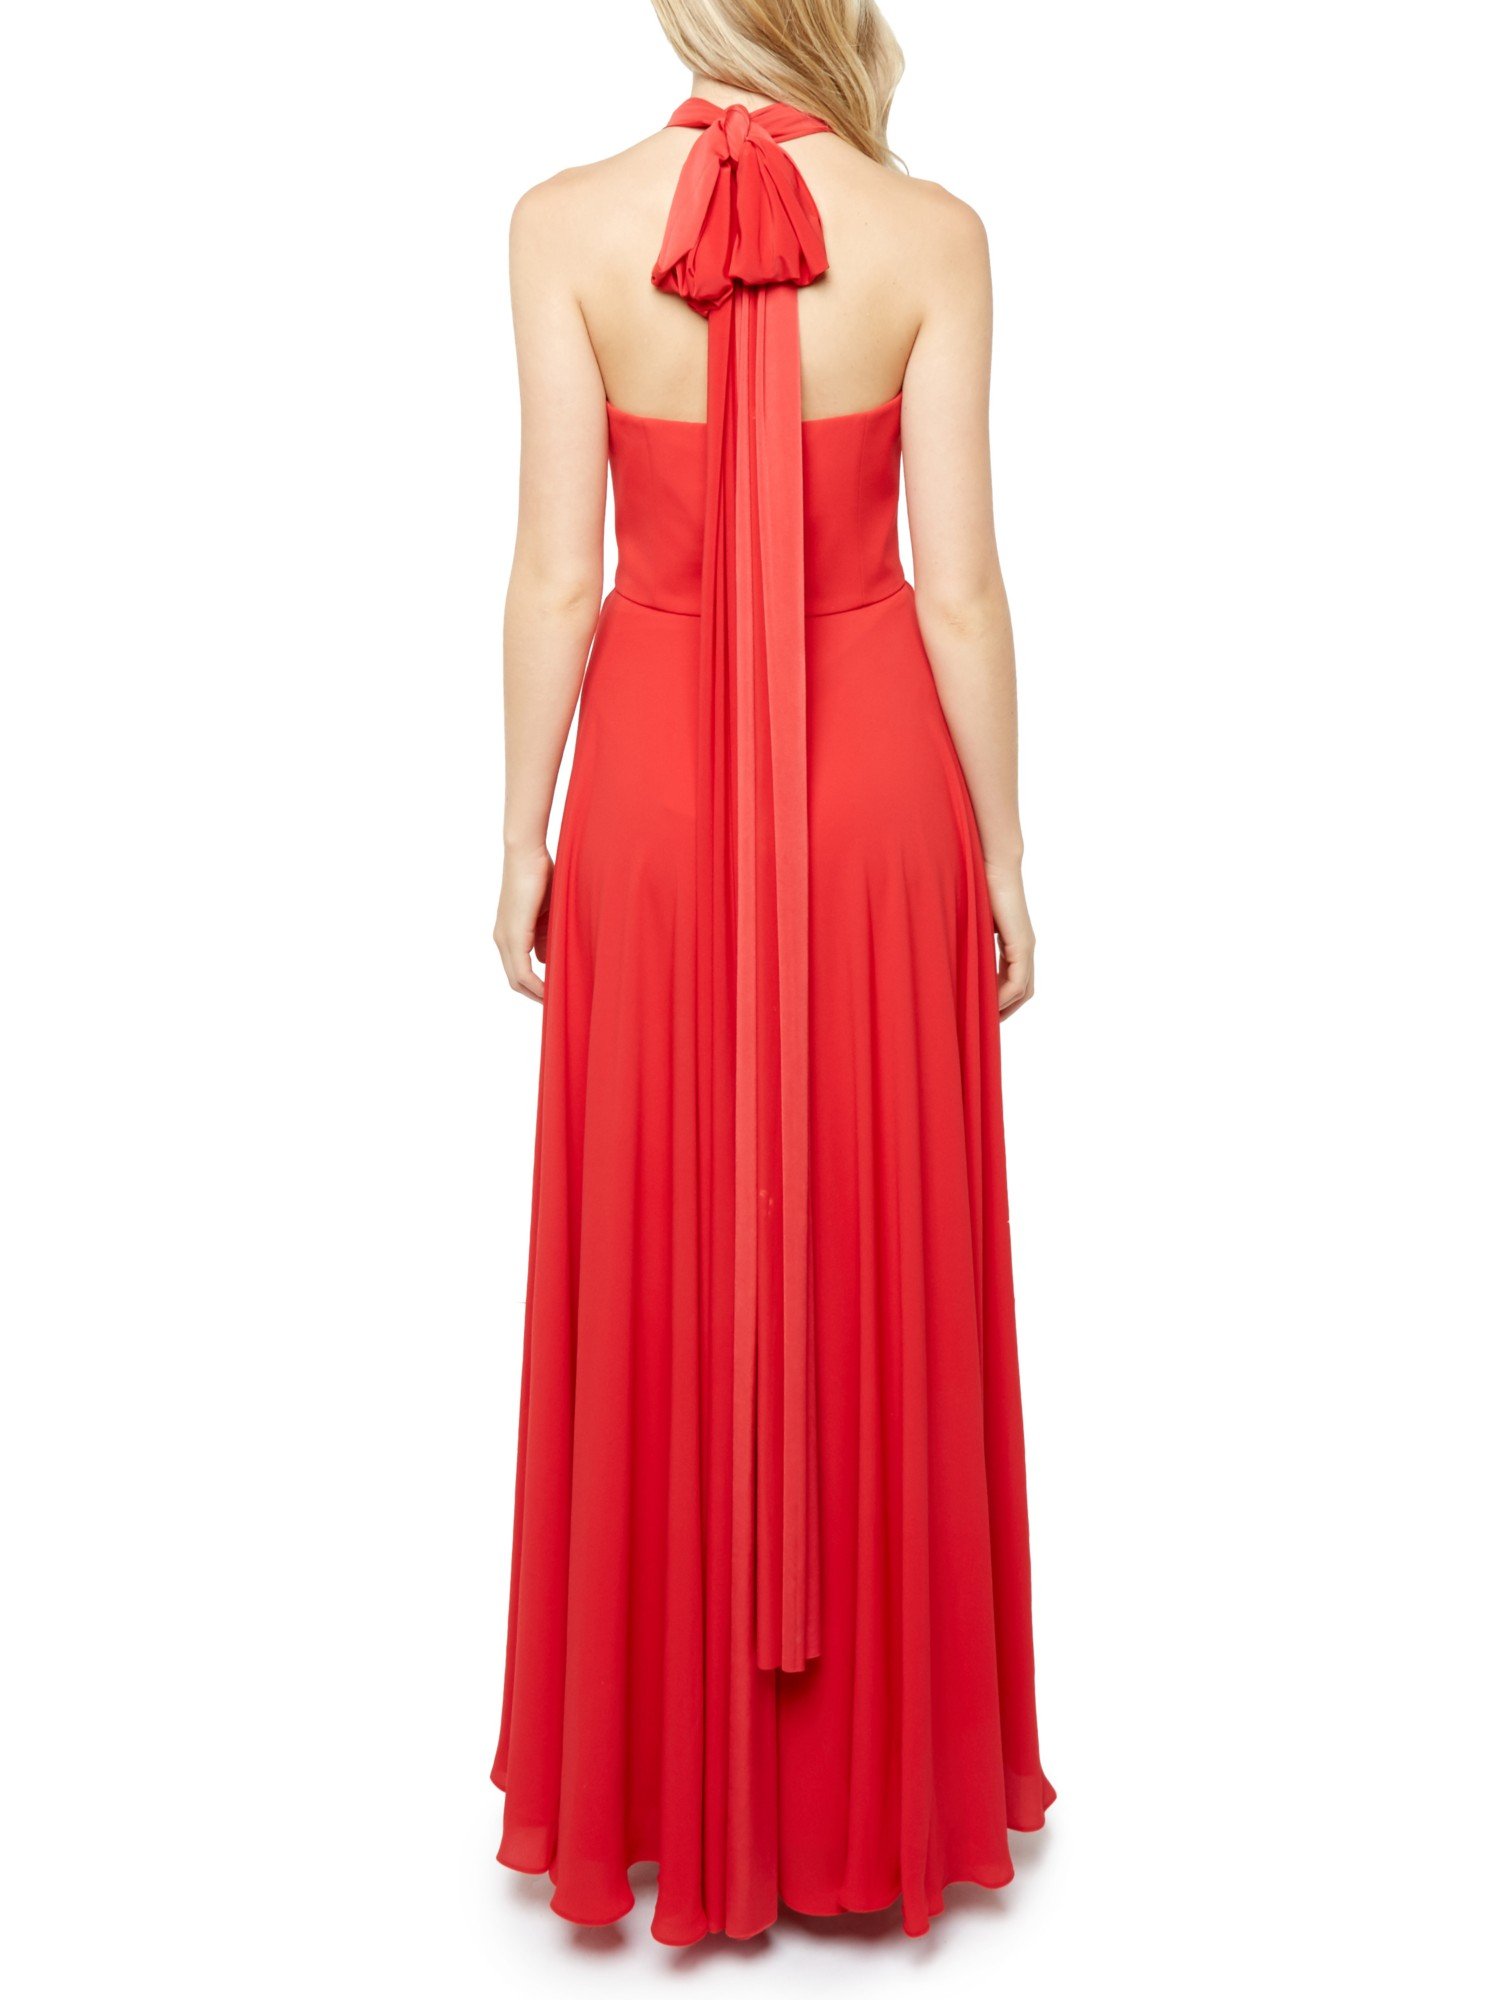 Lyst - Ted Baker Chleeo Multiway Evening Maxi Dress in Red